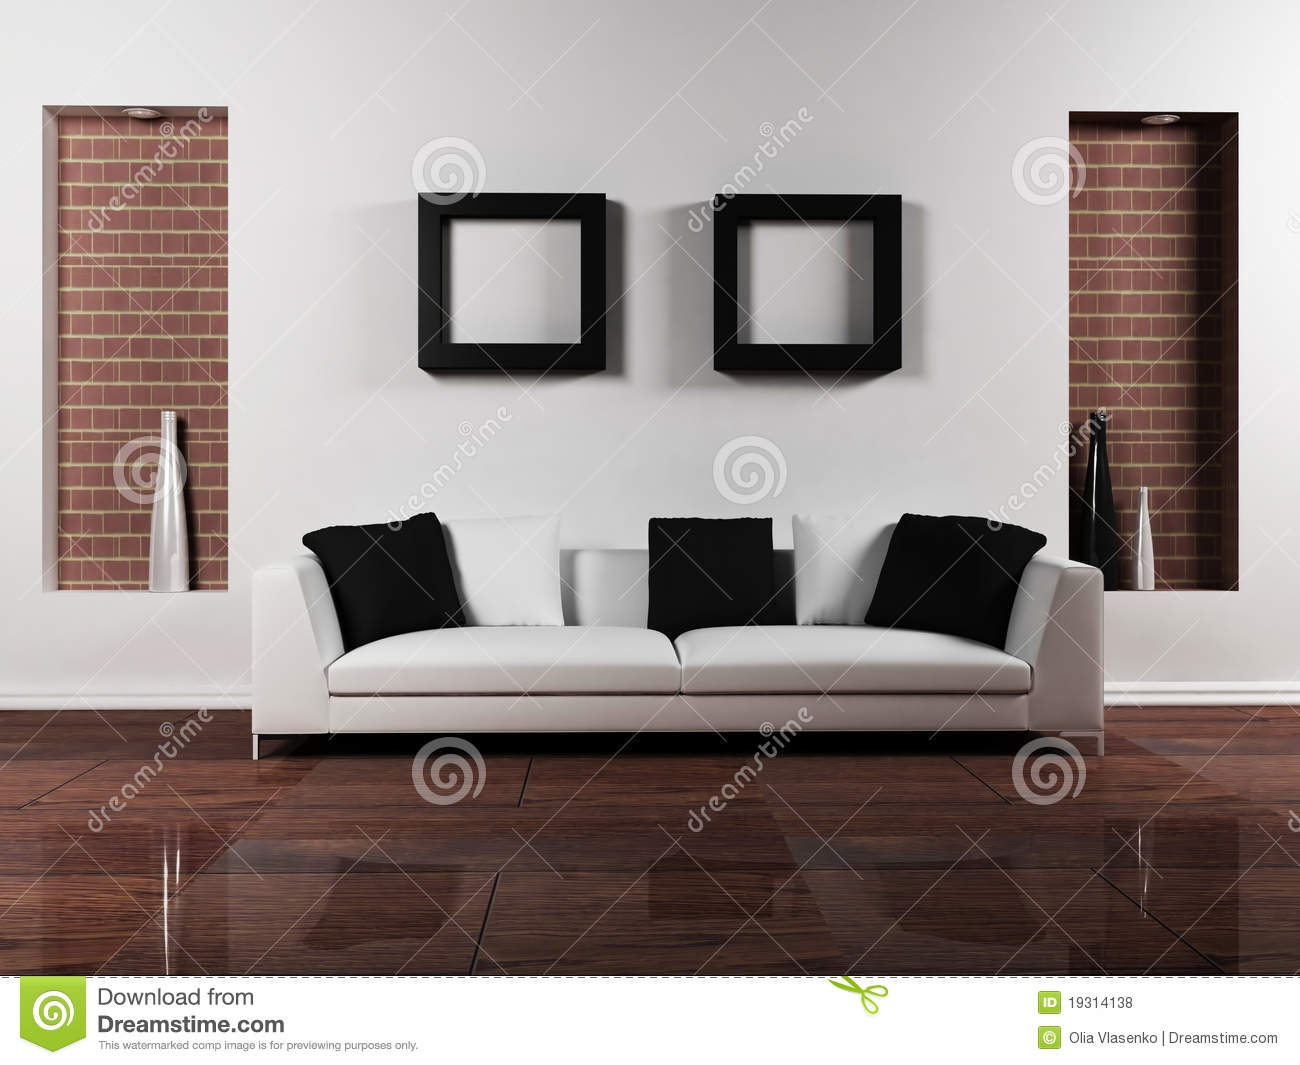 modern interior design of living room stock illustration image 19314138. Black Bedroom Furniture Sets. Home Design Ideas